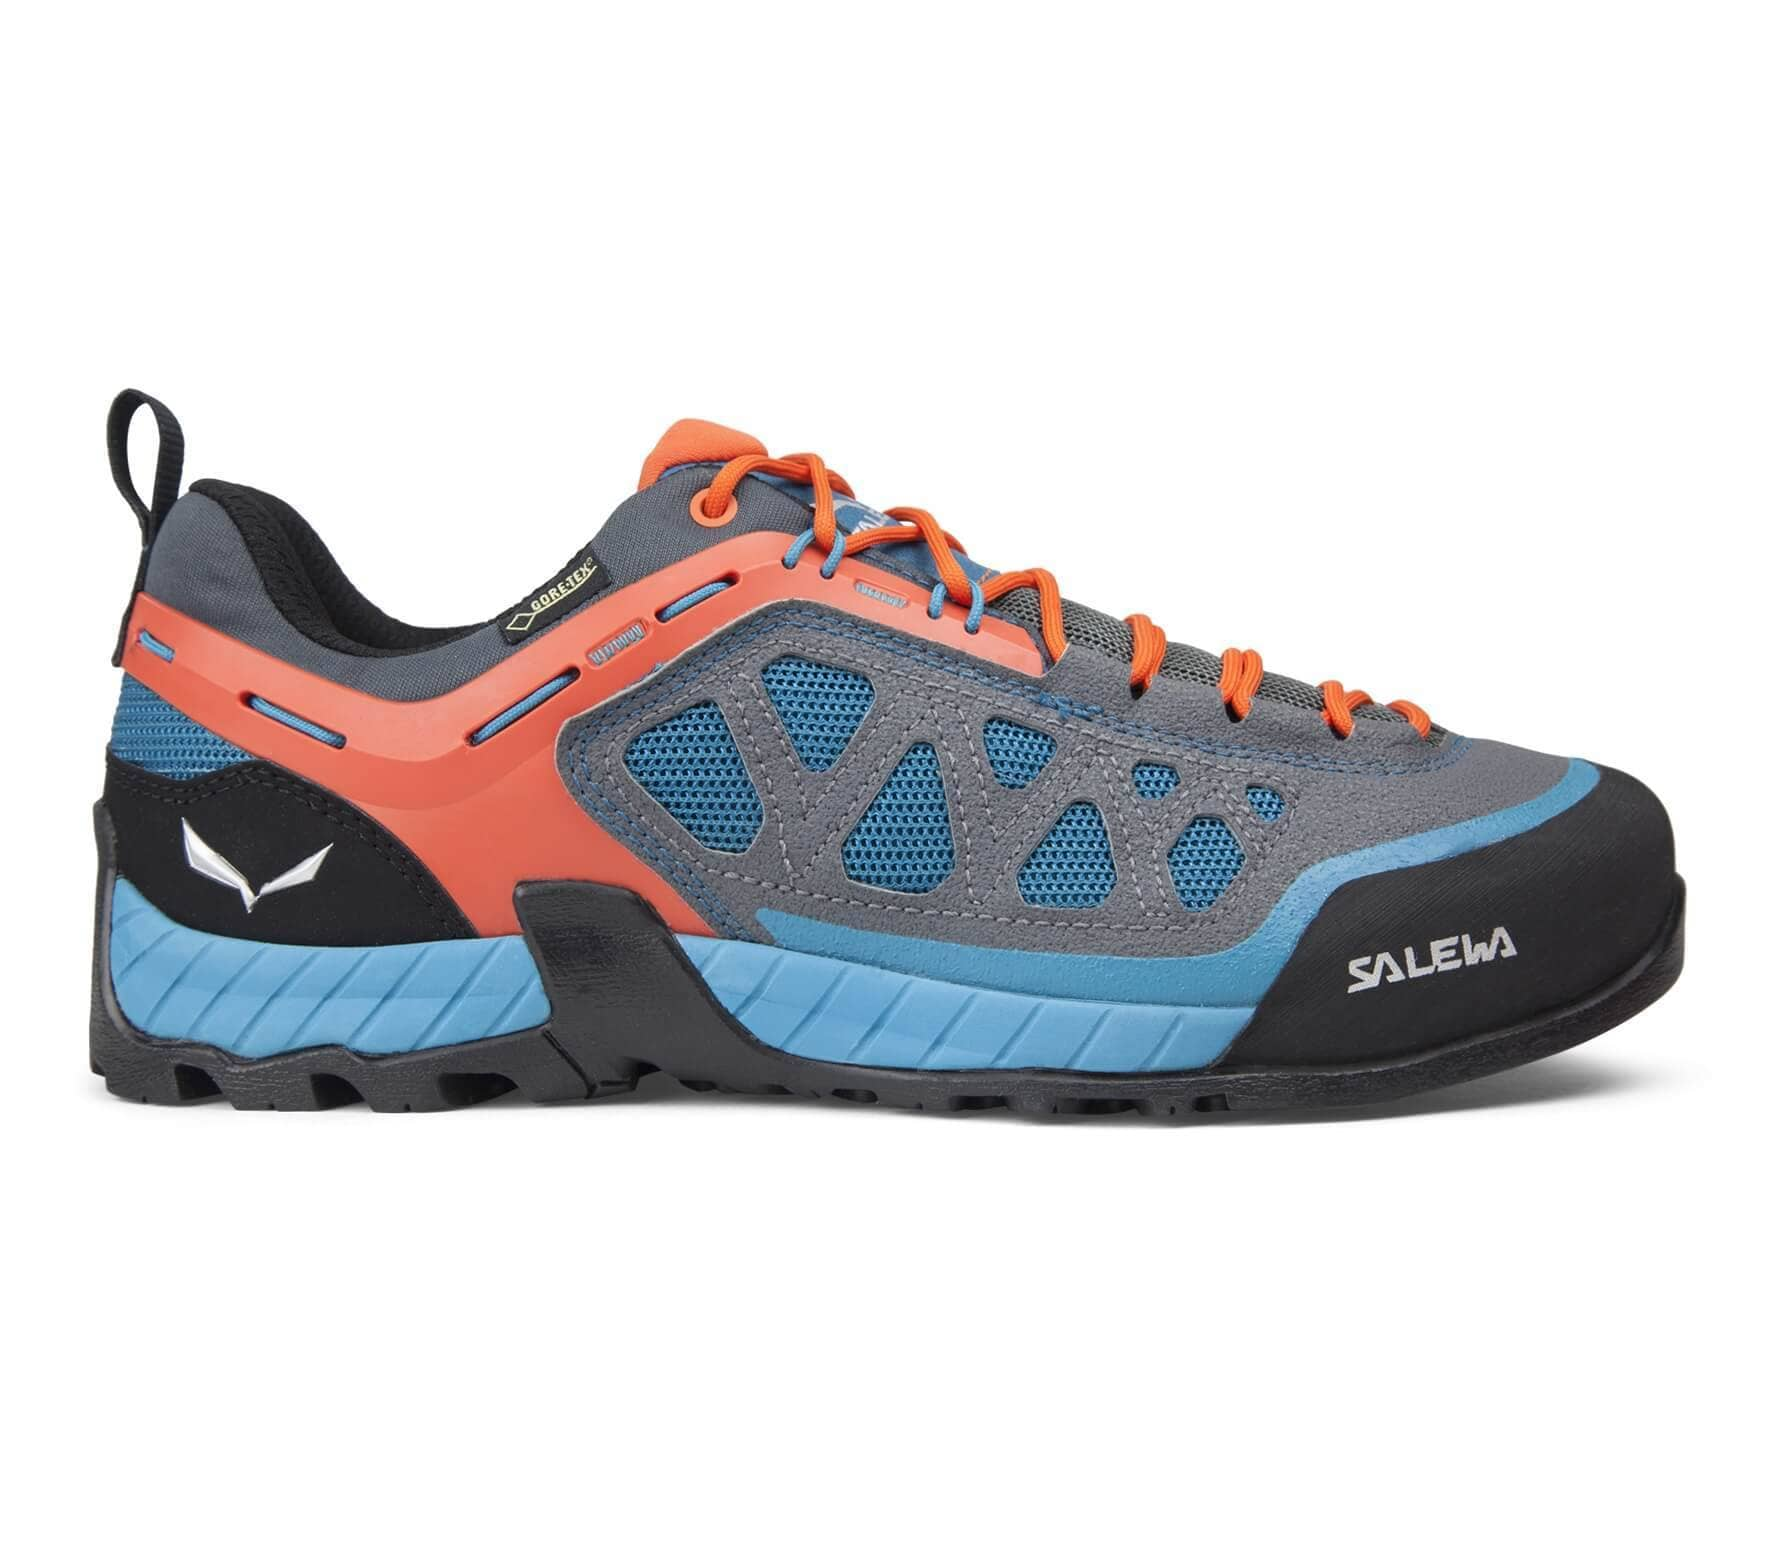 new styles a67c6 fafb4 Salewa - Firetail 3 GTX womens approach shoes (greyblue)